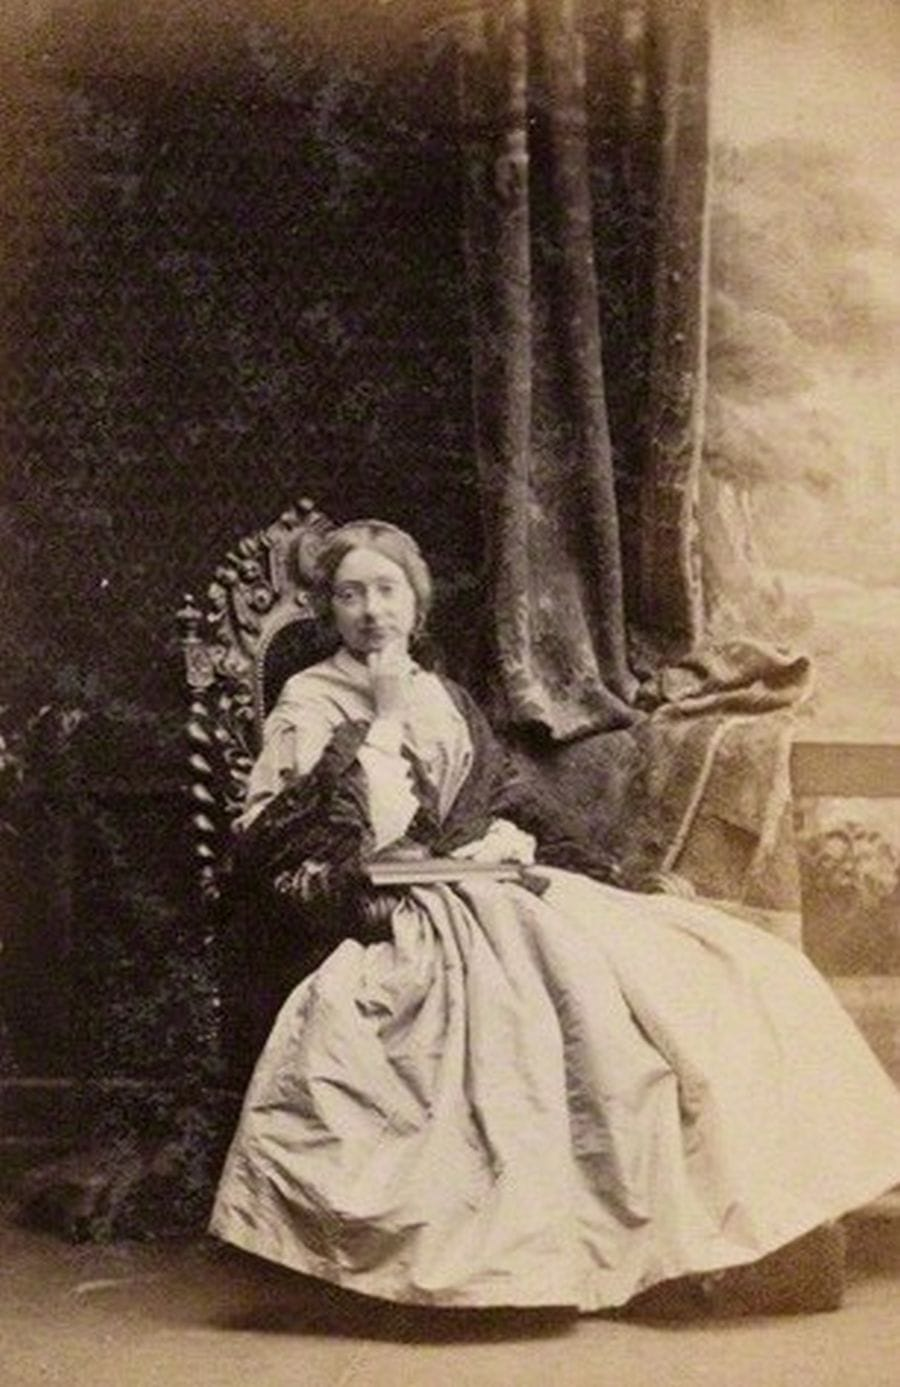 Maude Stanley 1861. Photograph by Camille Silvy - Widipedia pd